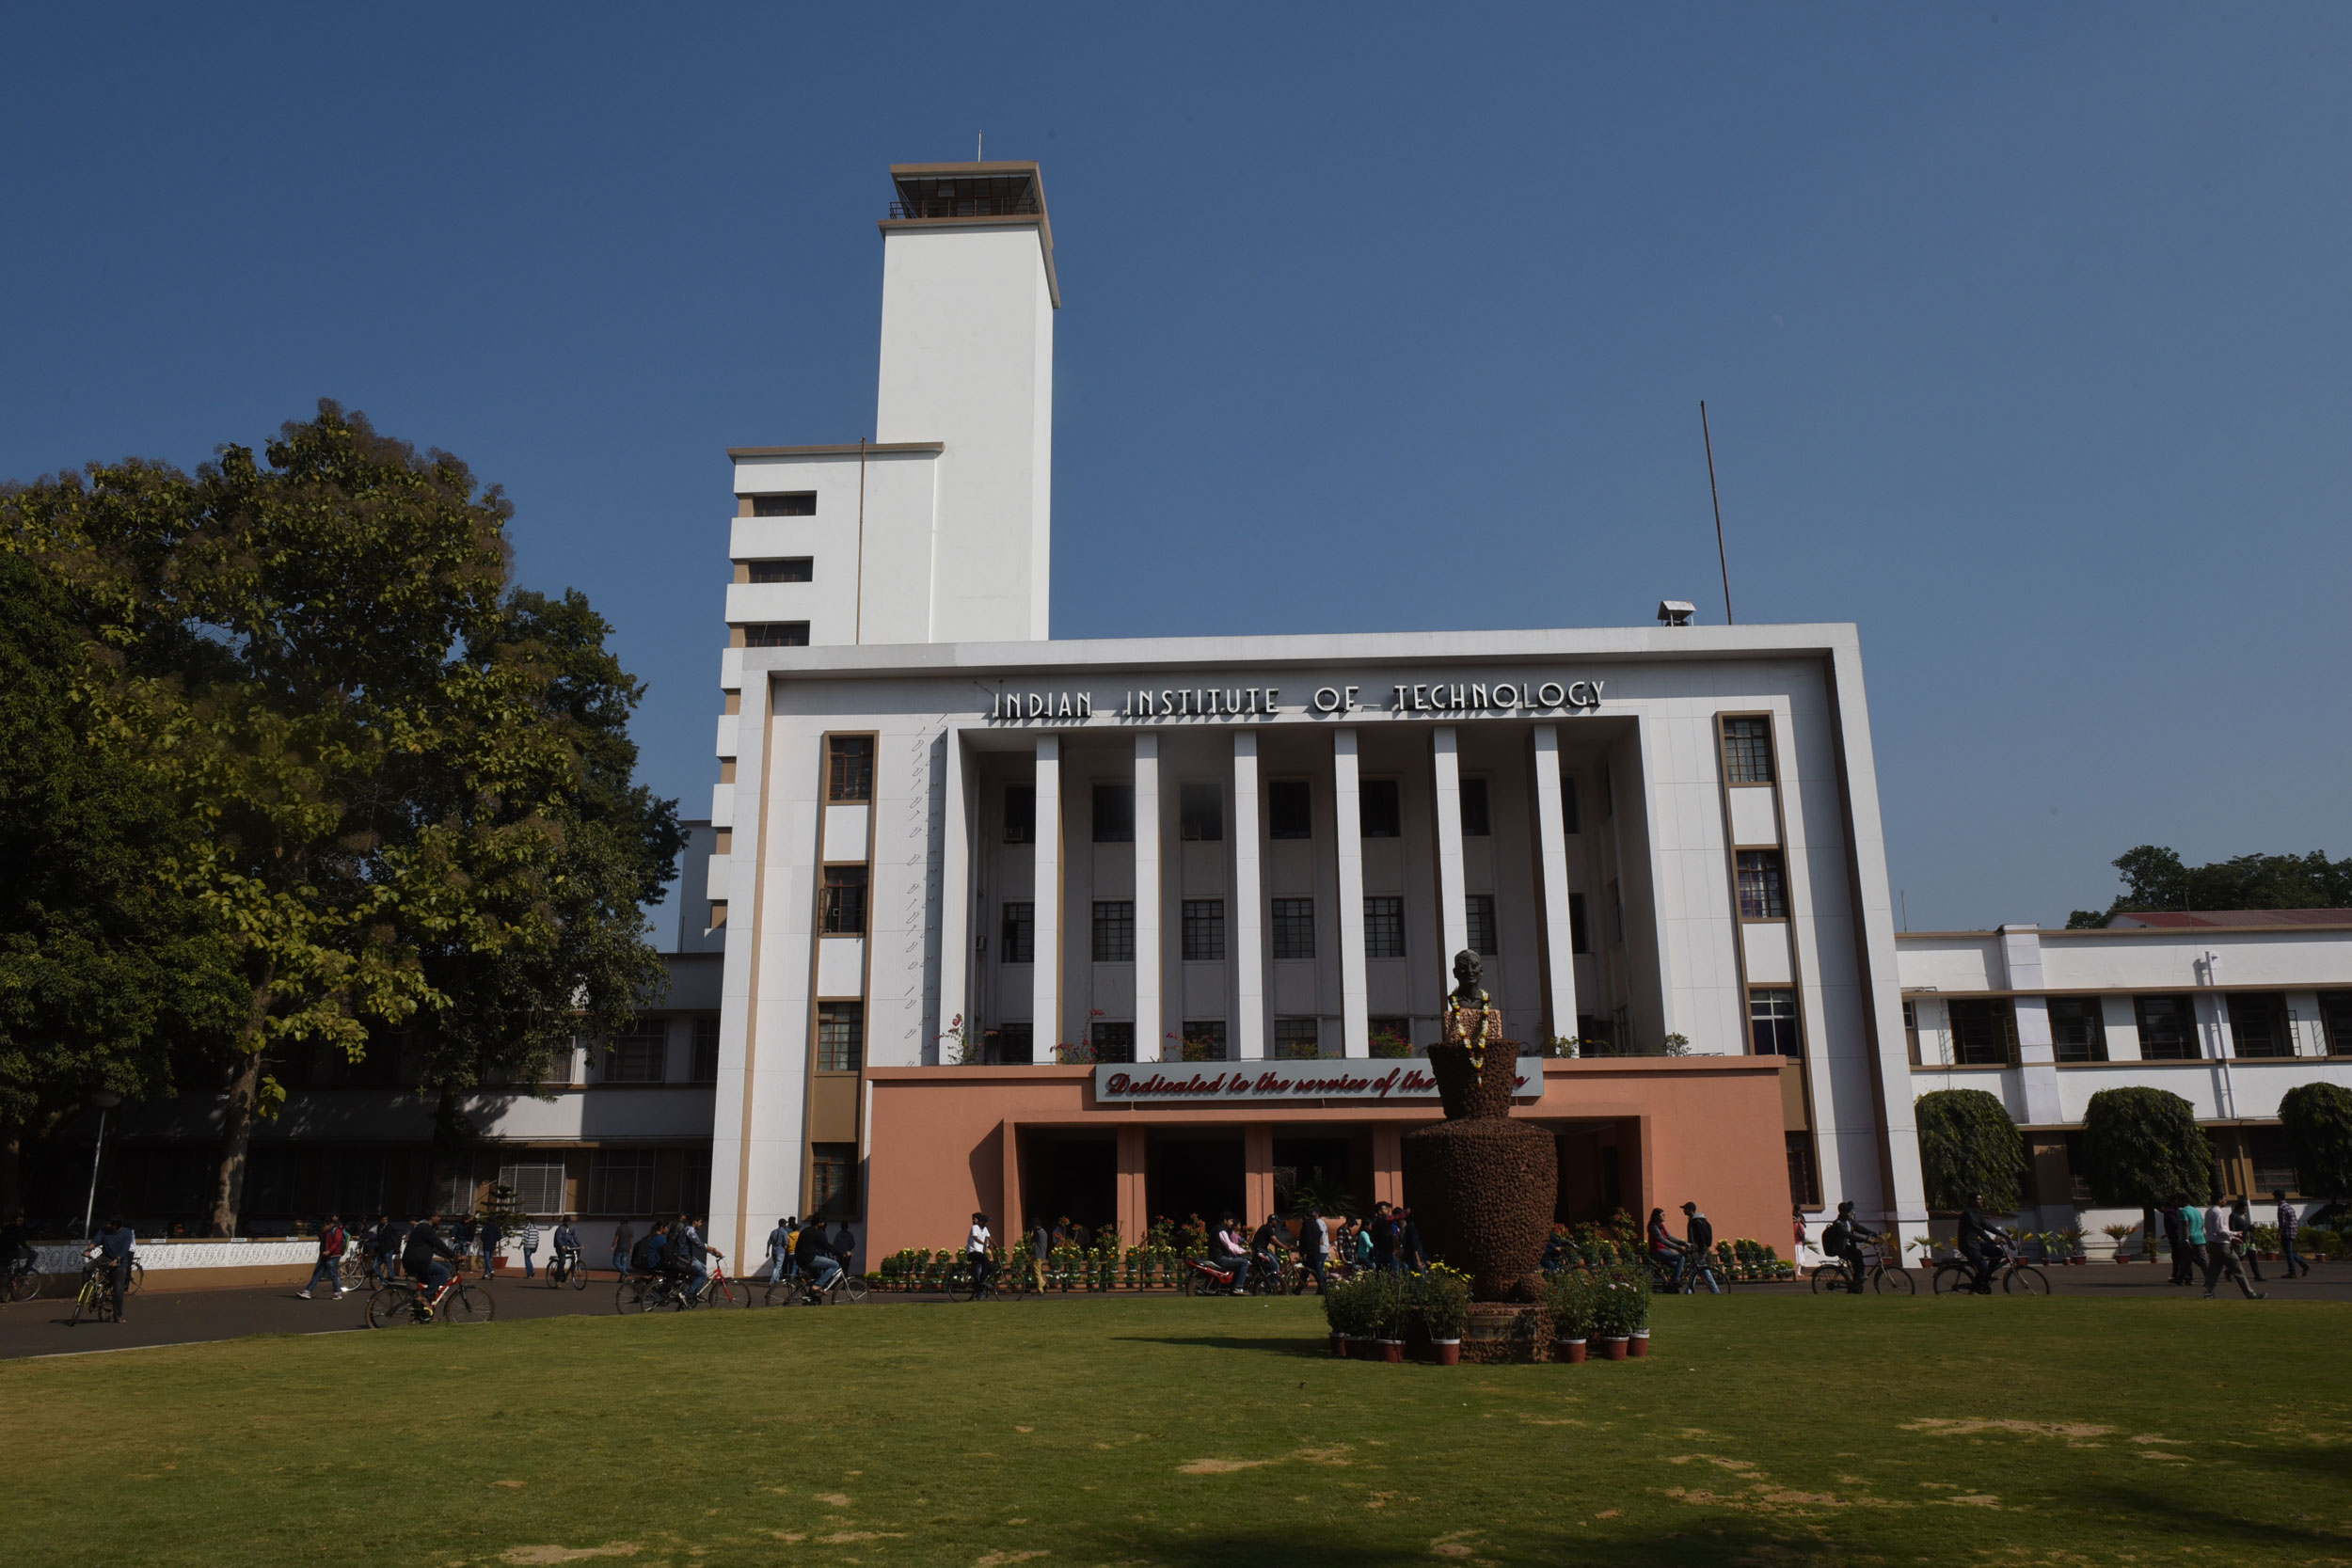 However, the IIT Kharagpur appointment was kept in abeyance. Partha Pratim Chakraborty, the present director, had appeared for the interview. Official sources said the selection panel did not reach a consensus on any candidate and no name was sent to the President.